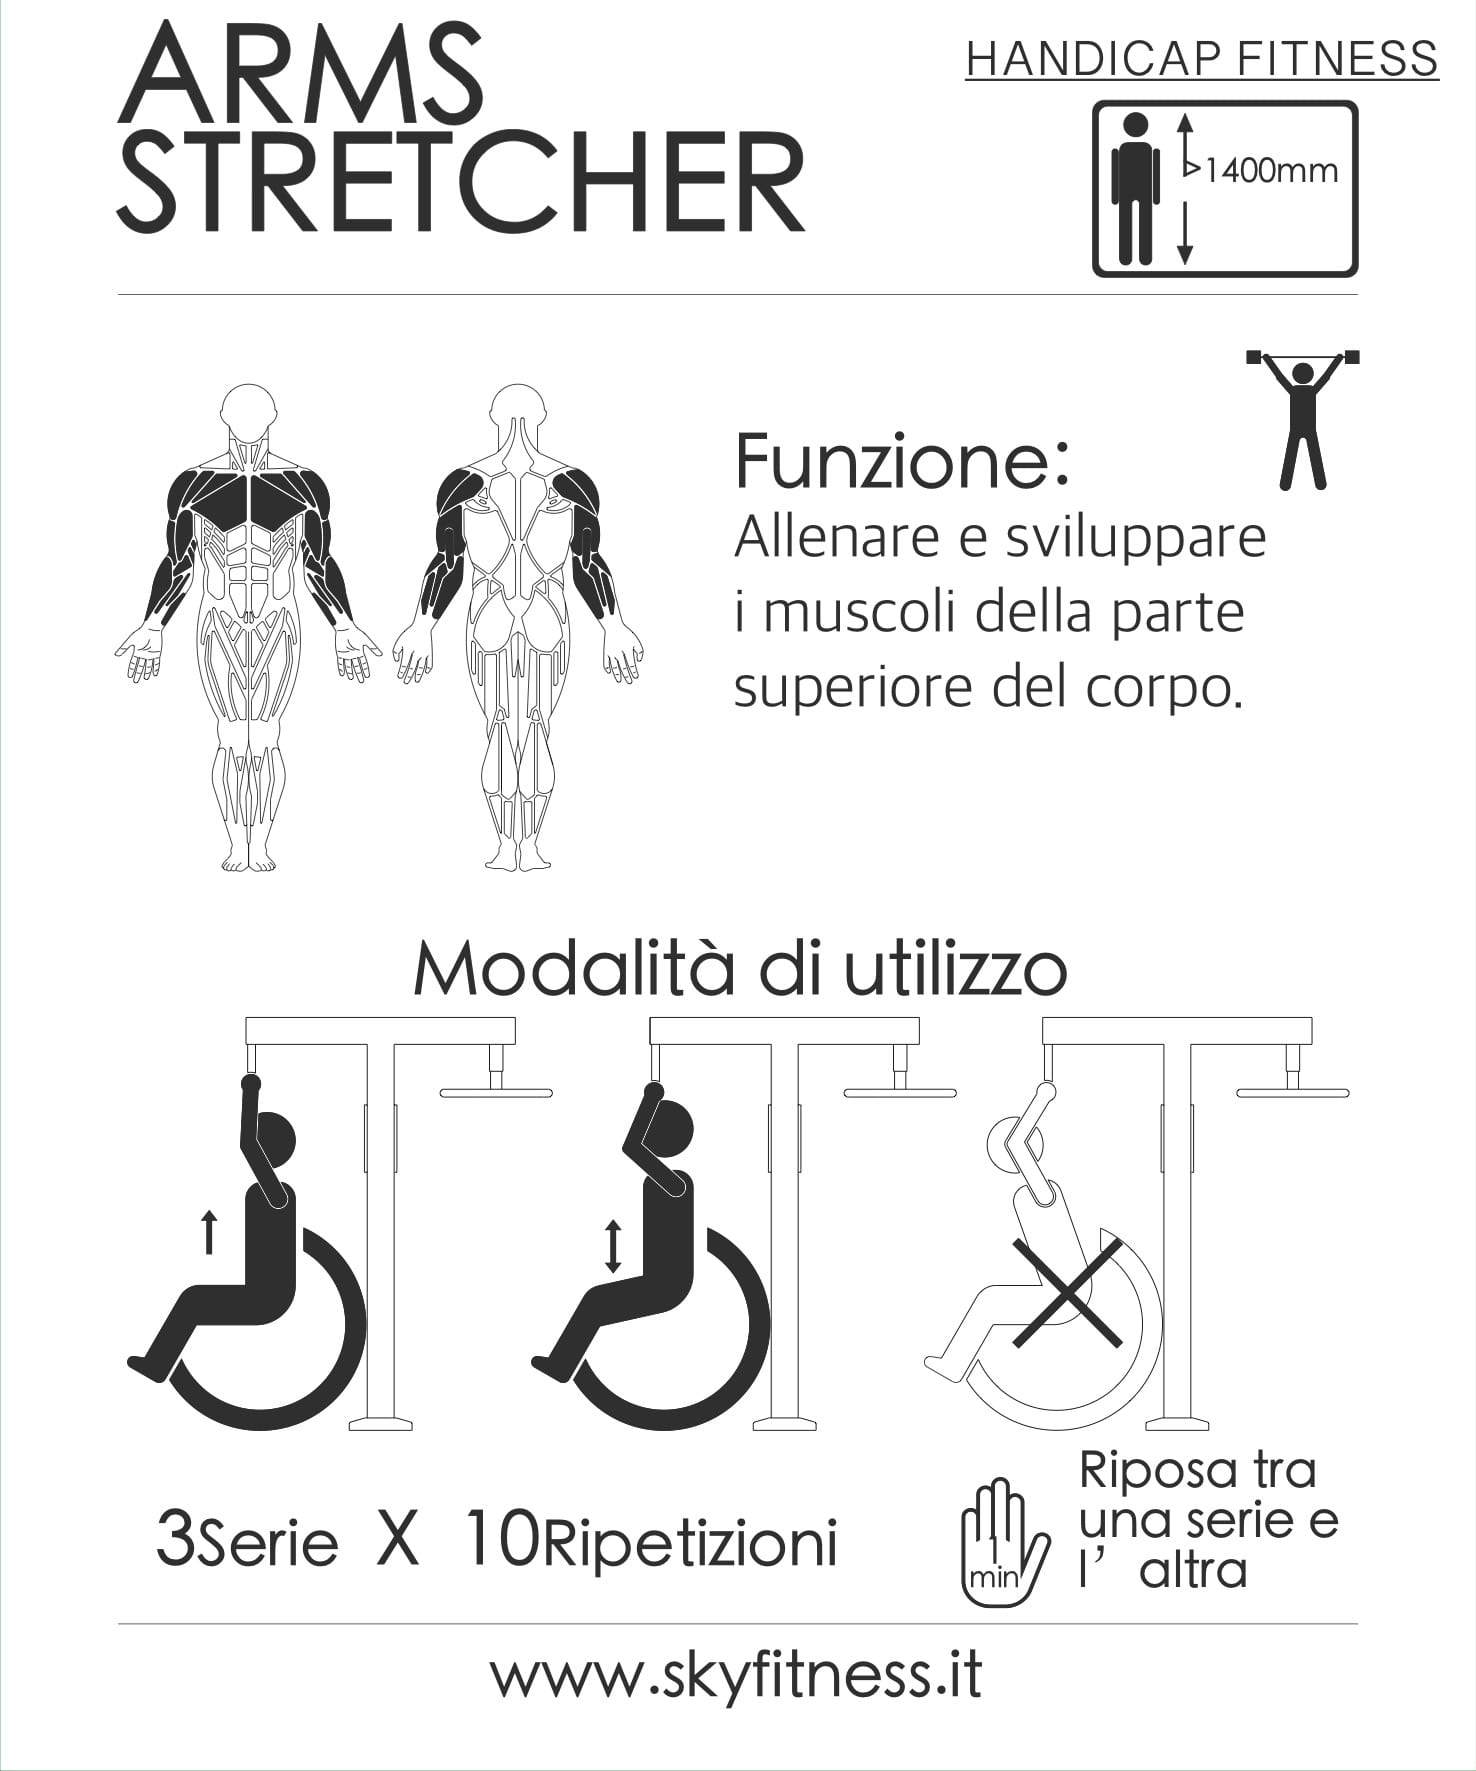 FIT HD 7- ARMS STRETCHER ita